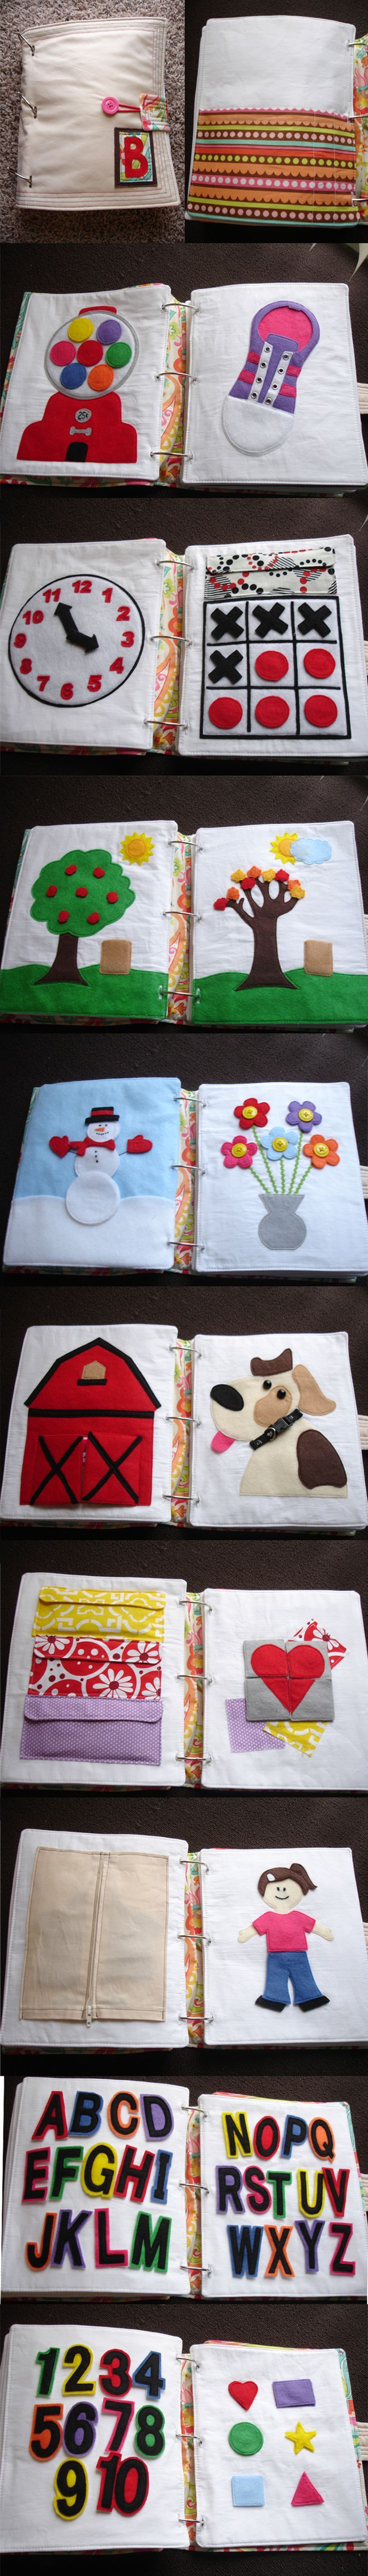 Im seriously considering making one of these quiet books for my 1 and 2 year olds...